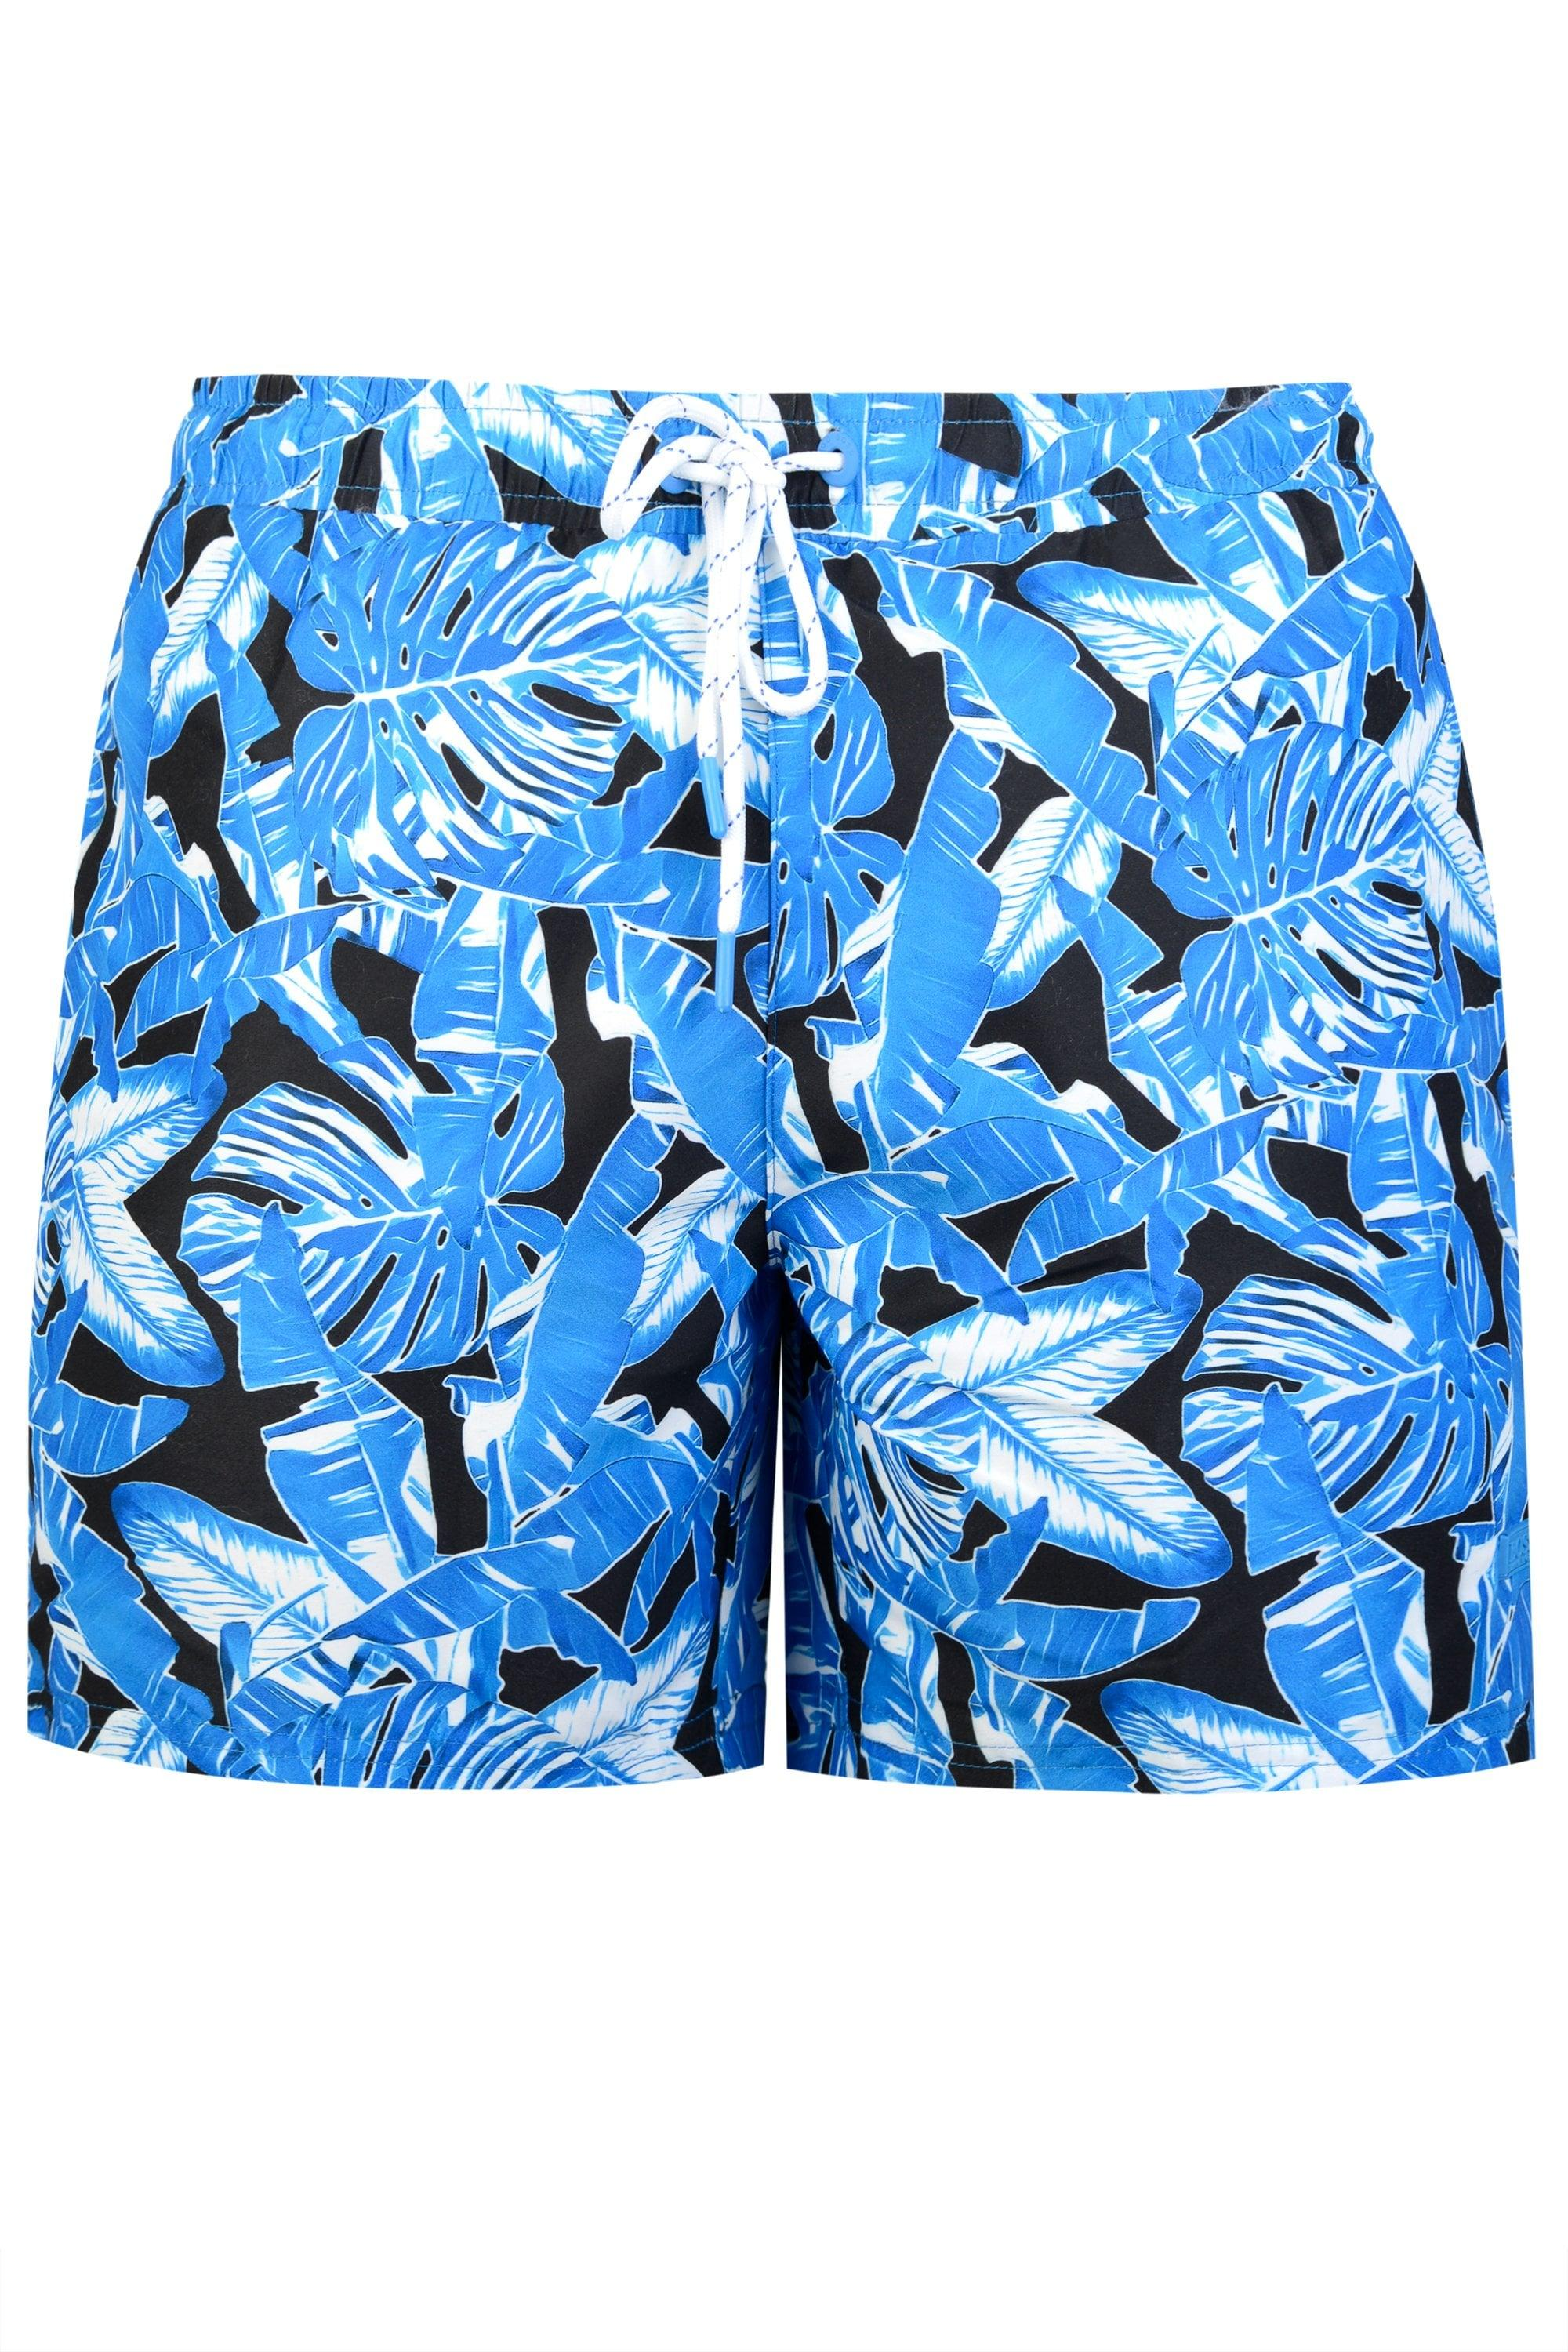 bcd5406fe2 BOSS. Men's Blue Hugo Barracuda Print Swim Shorts. £65 From Circle Fashion